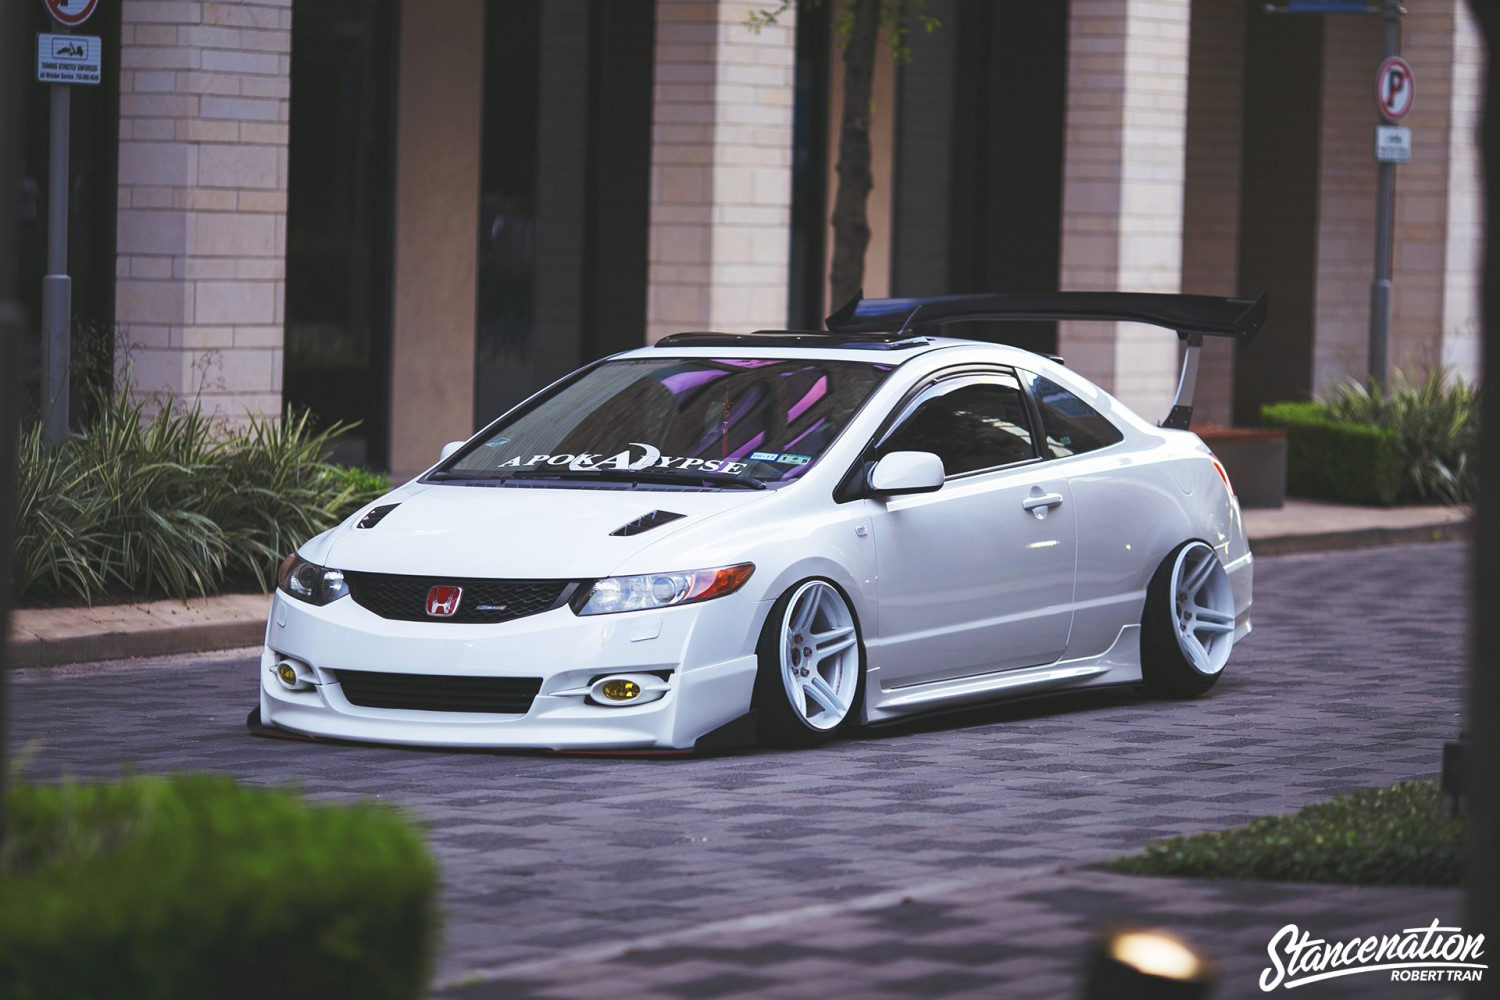 Honda 2006 honda coupe : civic | StanceNation™ // Form > Function